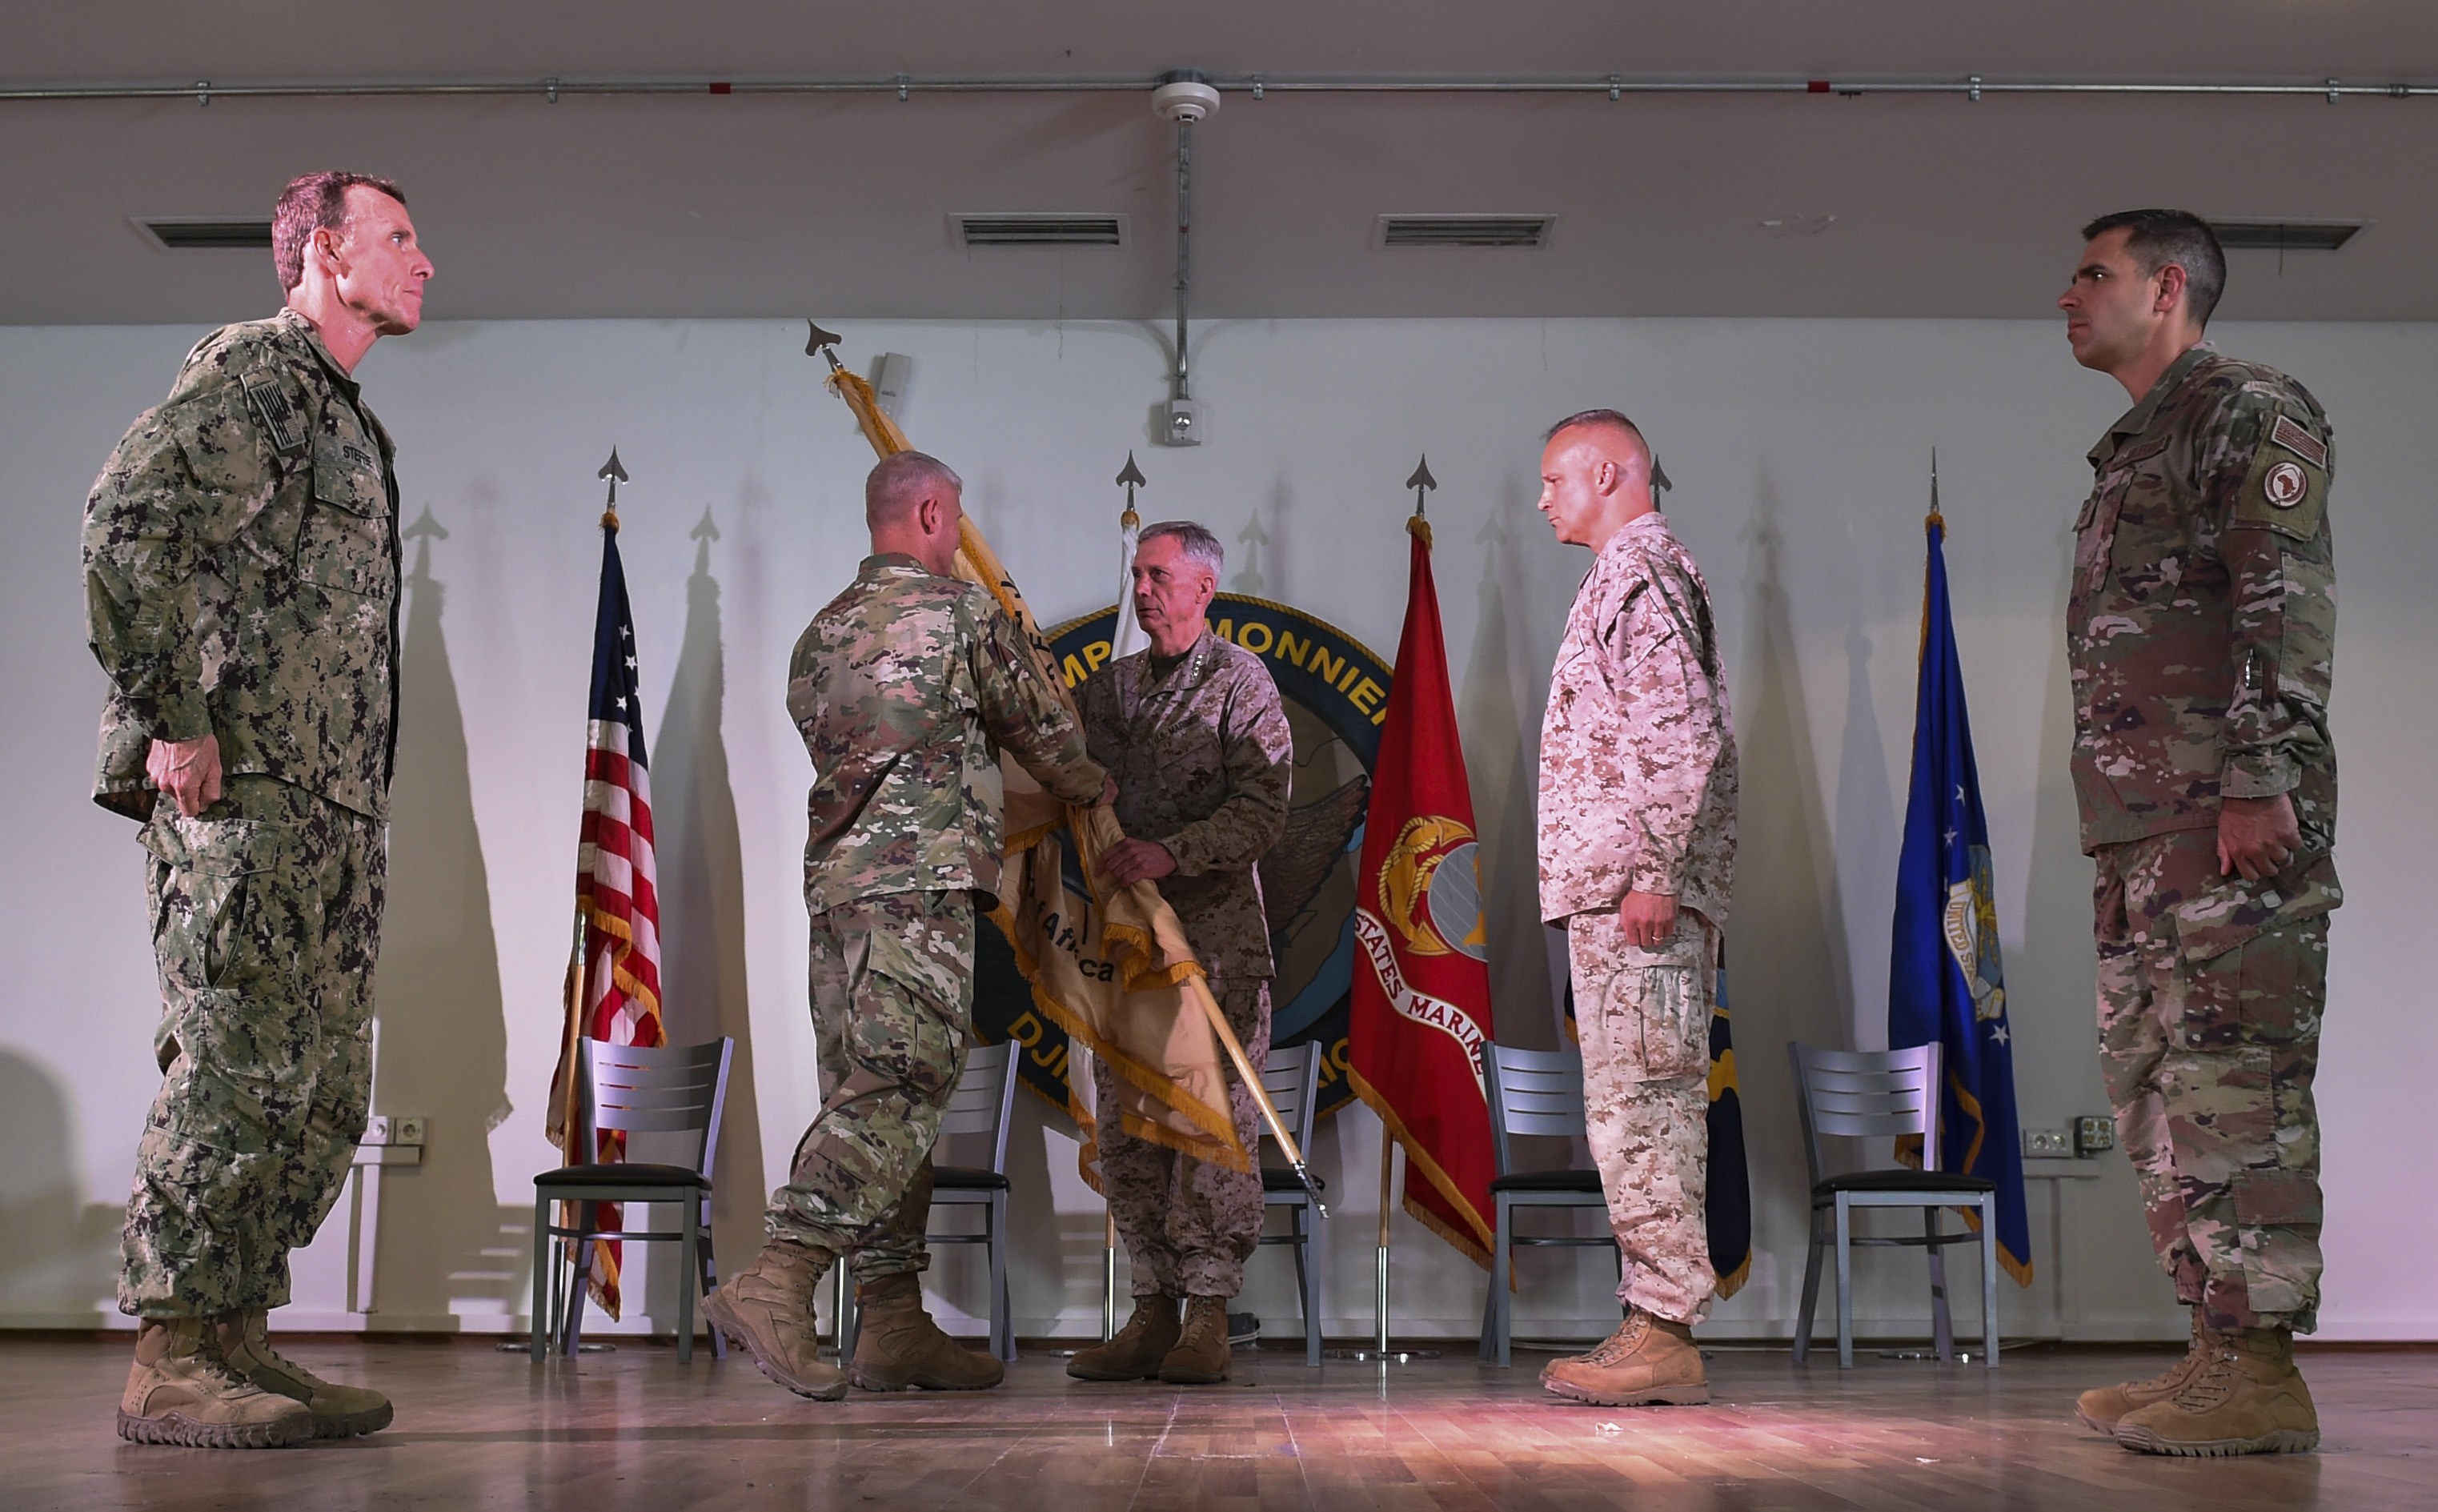 U.S. Army Maj. Gen. Kurt L. Sonntag, the outgoing Combined Joint Task Force - Horn of Africa commander, hands the guidon to U.S. Marine Corps Gen. Thomas Waldhauser, U.S. Africa Command commander, during the change of command ceremony on Camp Lemonnier in Djibouti, April 28, 2017. A prime component of the CJTF-HOA mission is to help build the defense capability and capacity among its East African partners. (U.S. Air Force Photo by Eboni Prince)